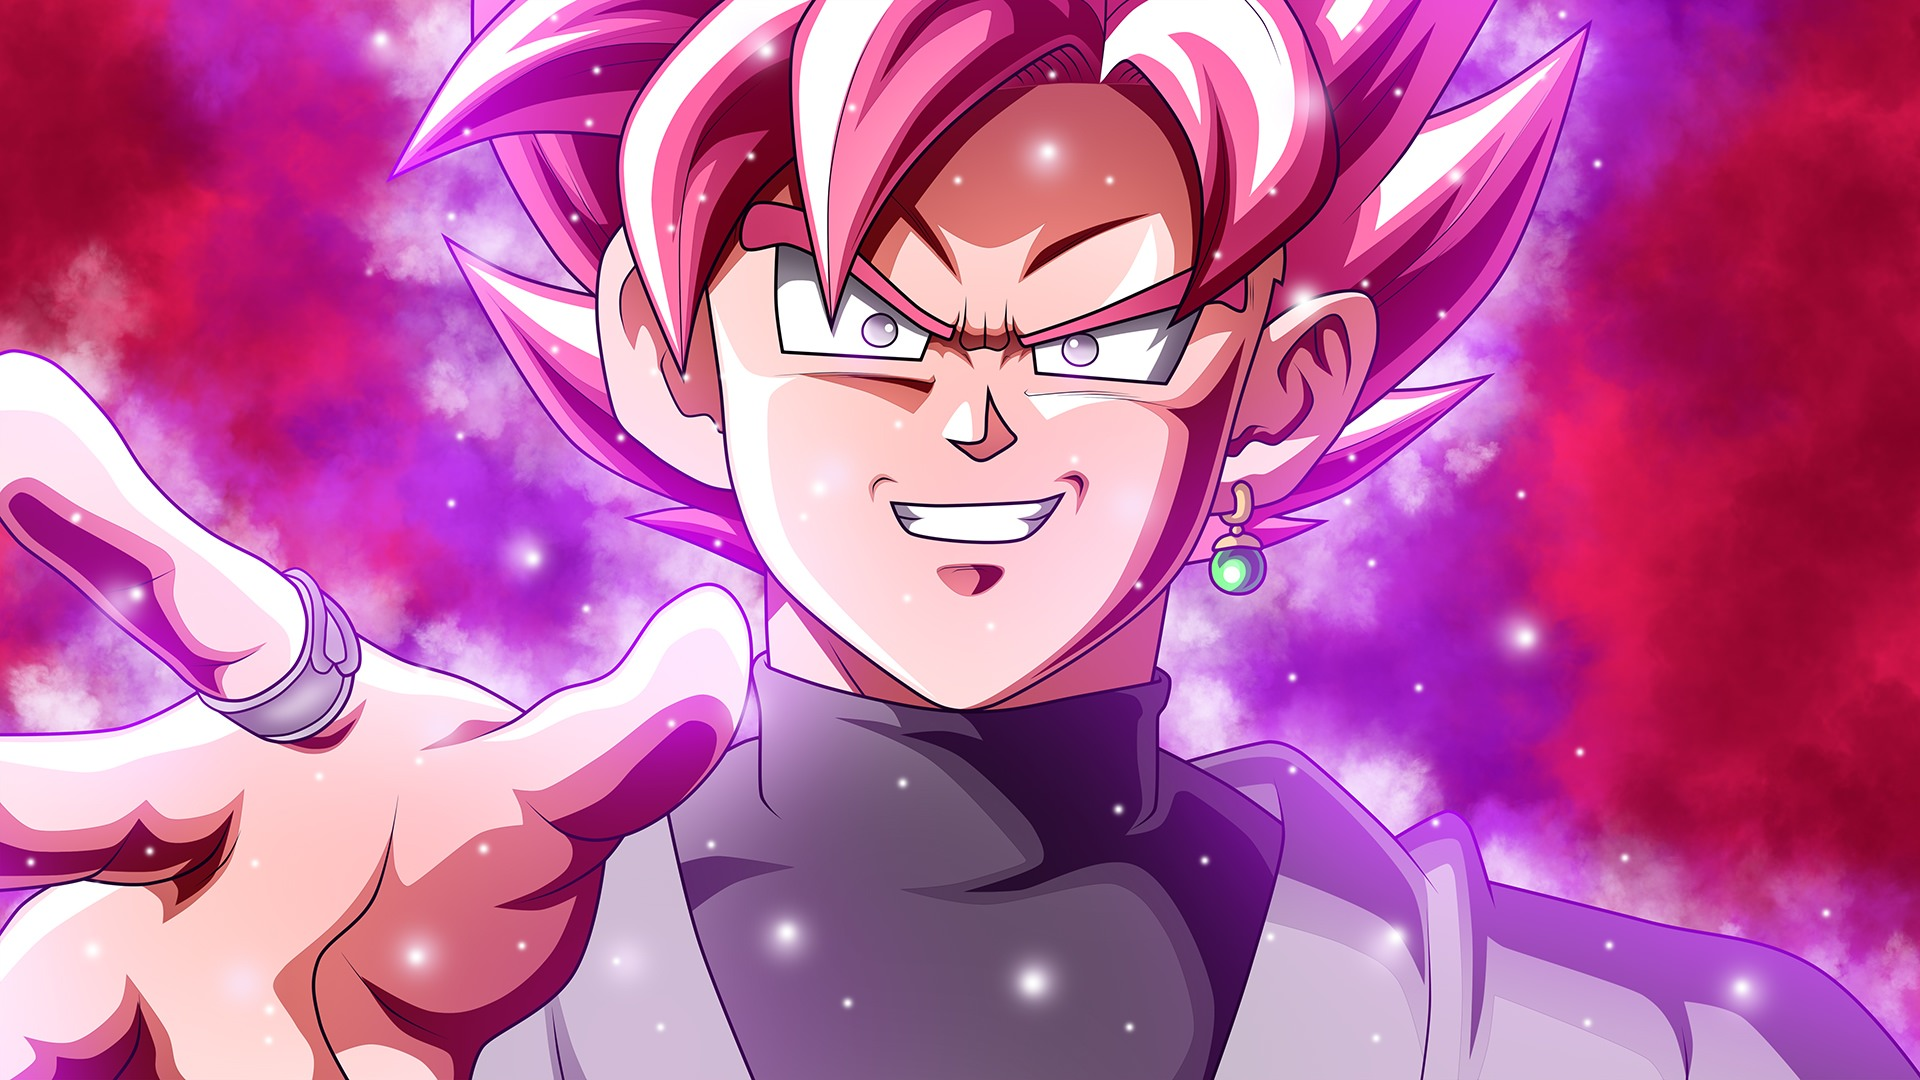 Super Saiyan Rose Goku Black Wallpaper: Top Free Black Goku Backgrounds